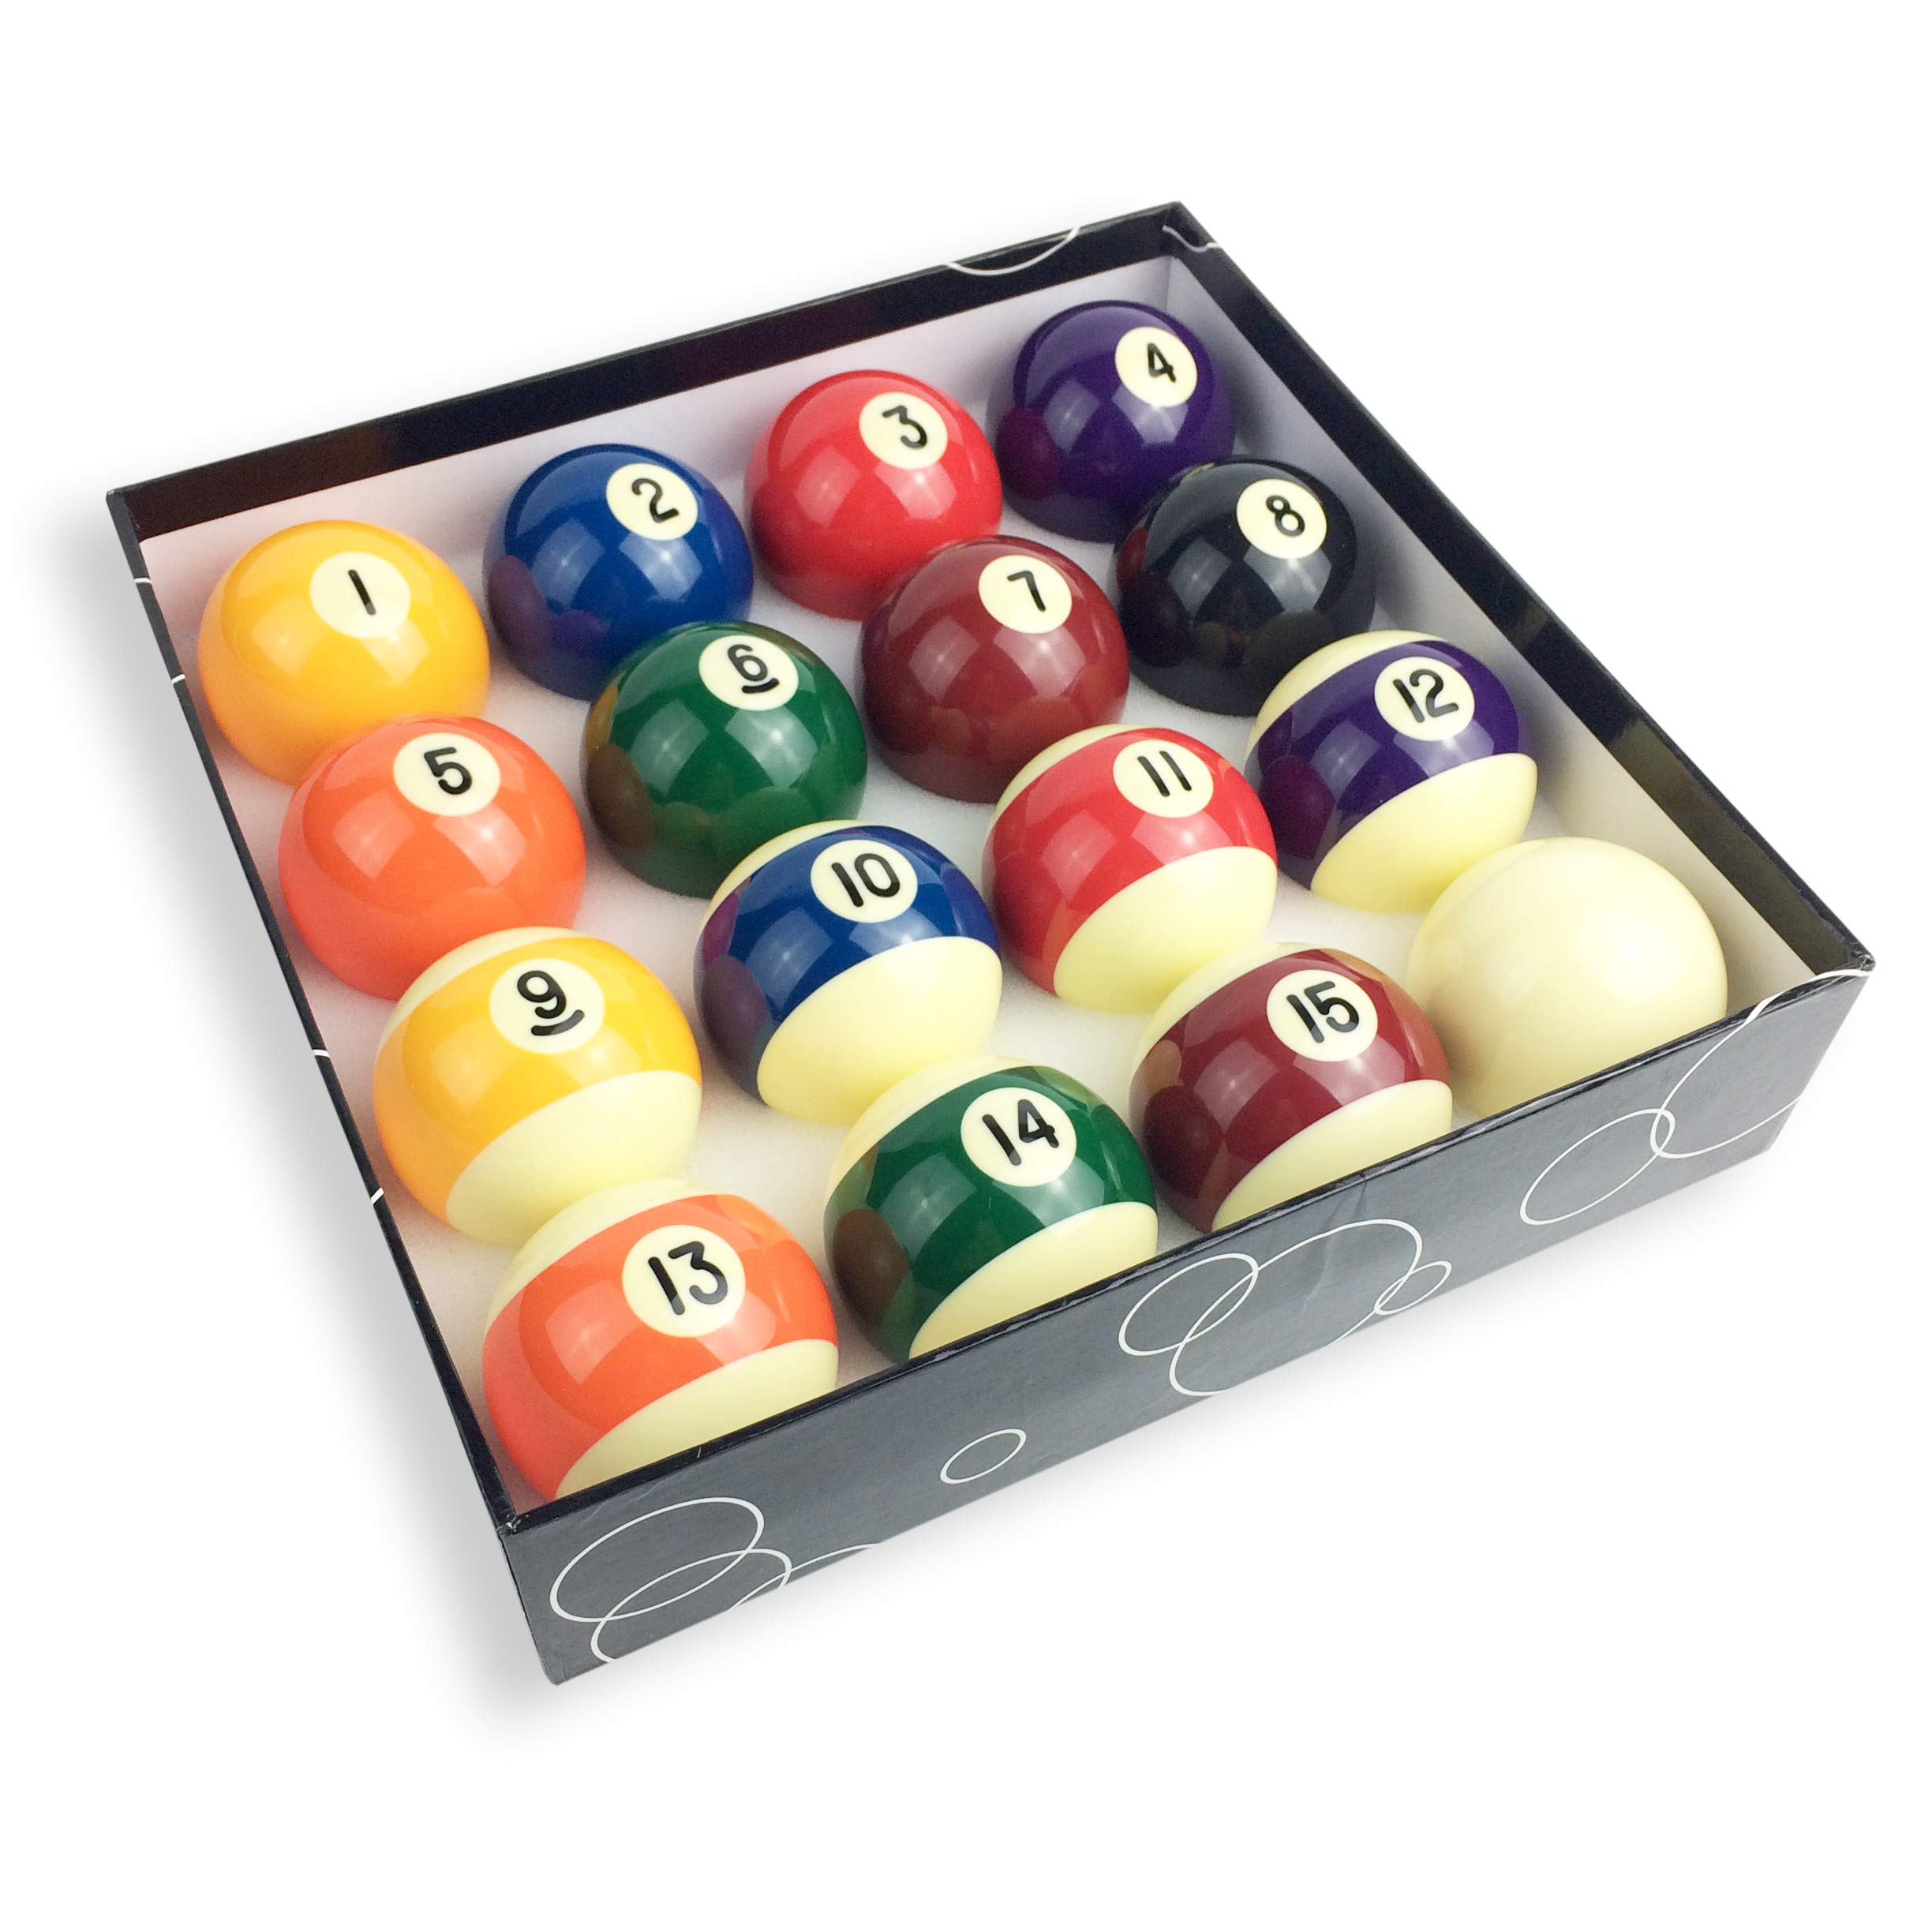 JAPER BEES Premium Standard Billiard Ball/Pool Ball Set,Complete 16balls, 2 1/4 inch Regulation Size&5.9OZ Weight, Resin Ball by JAPER BEES